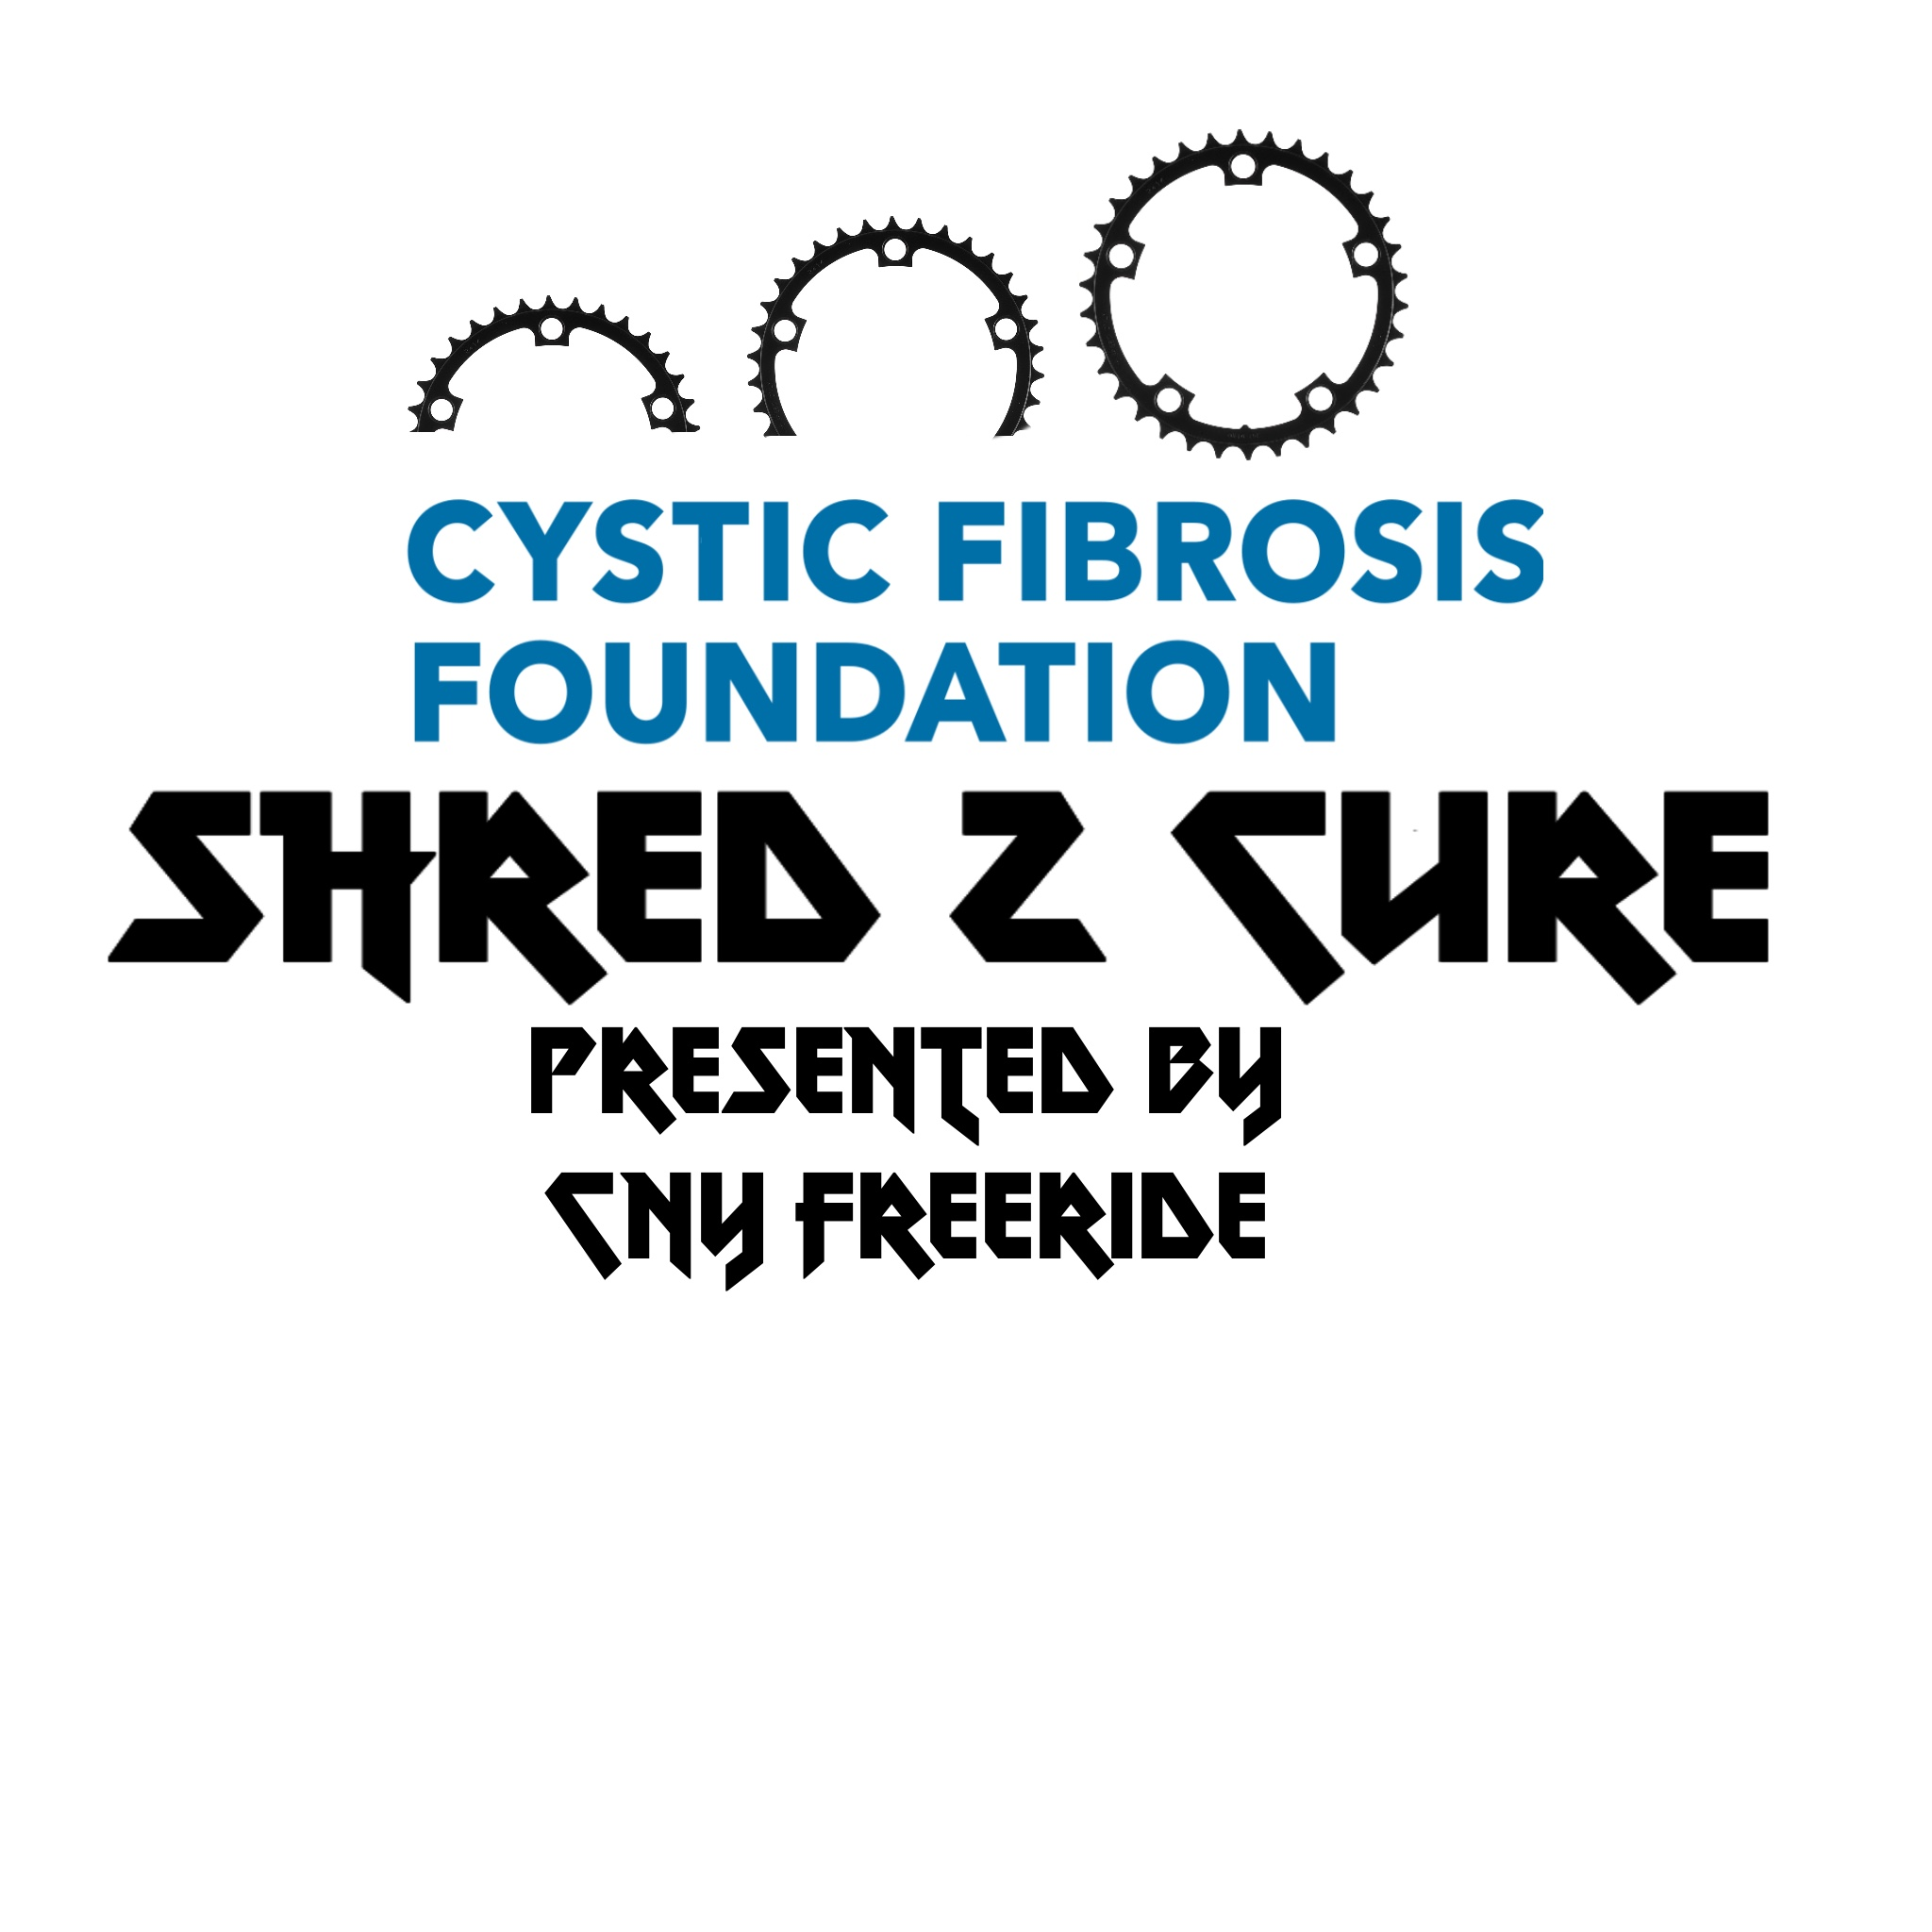 Text that says Cystic fibrosis shred 2 cure presented by cny freeride